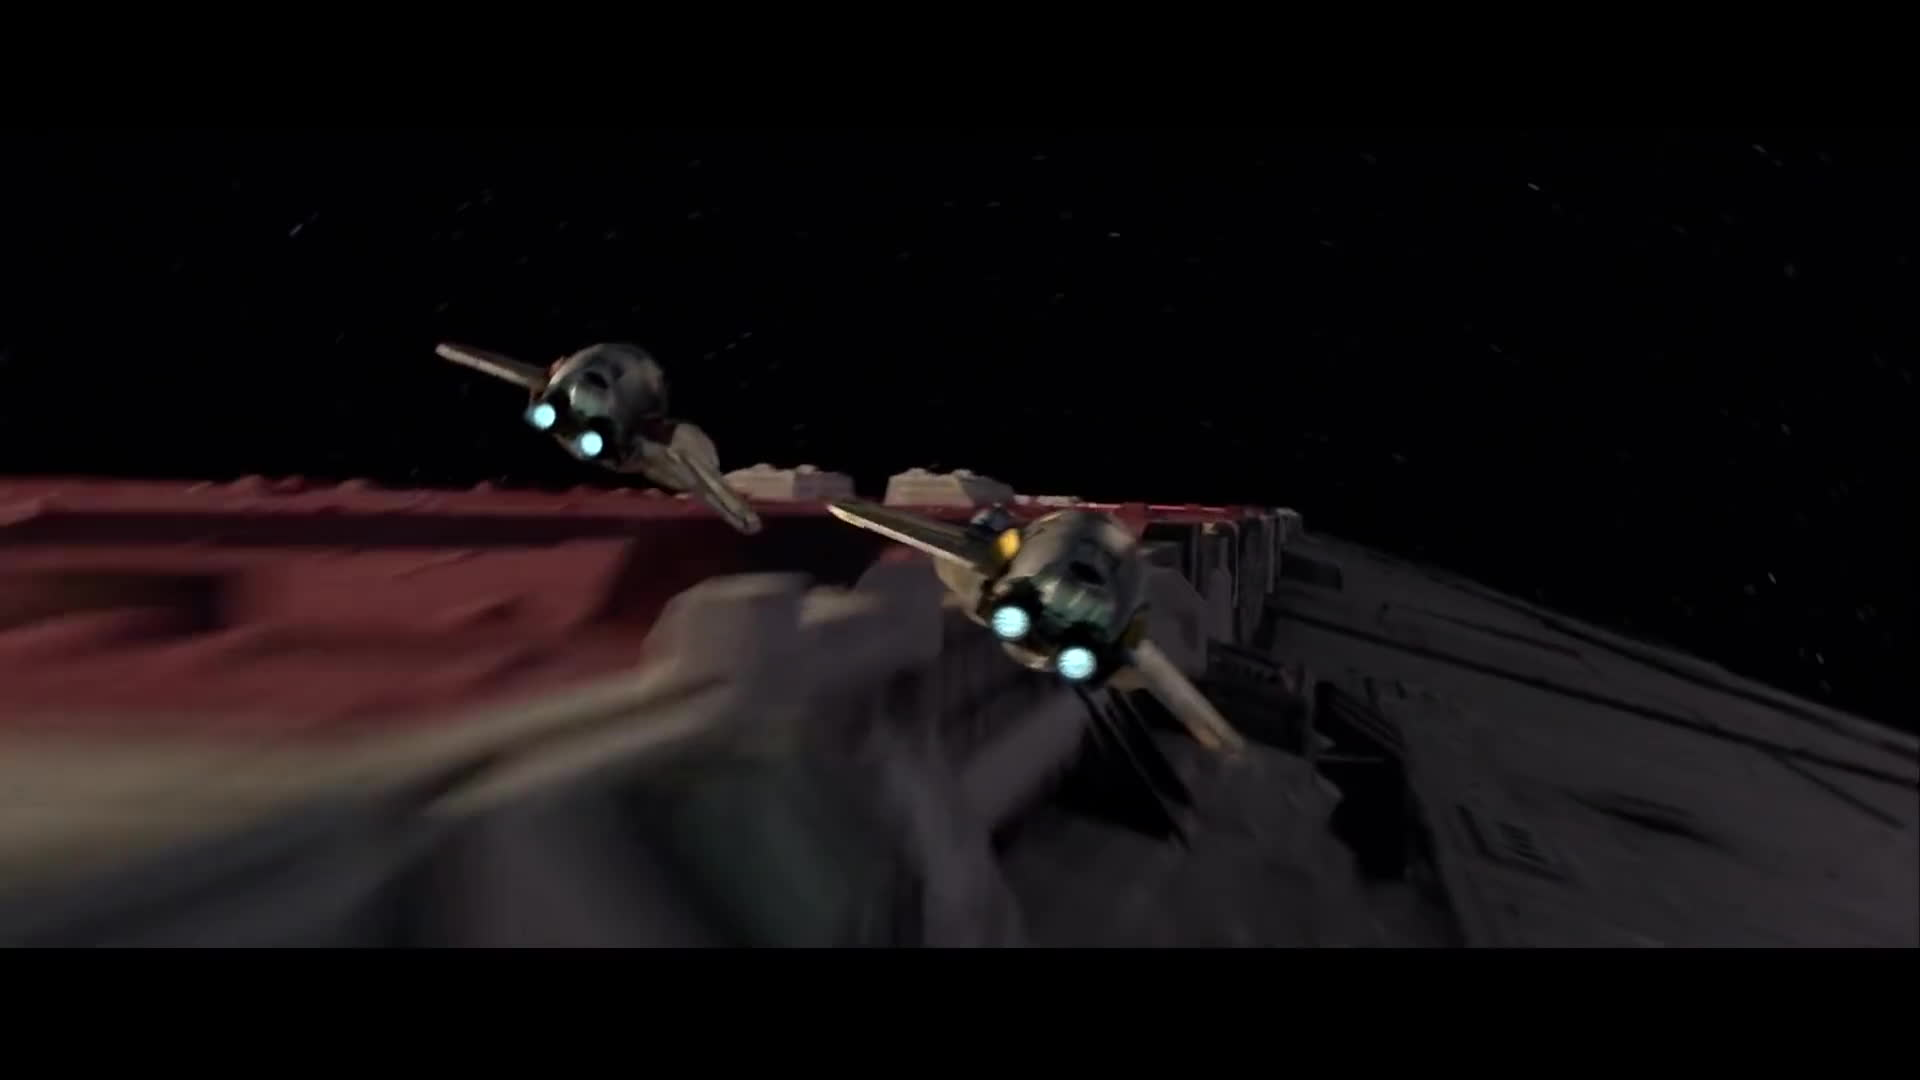 Star Wars Revenge Of The Sith Opening Scene 1080 Hd Gif By Cracklo Gfycat